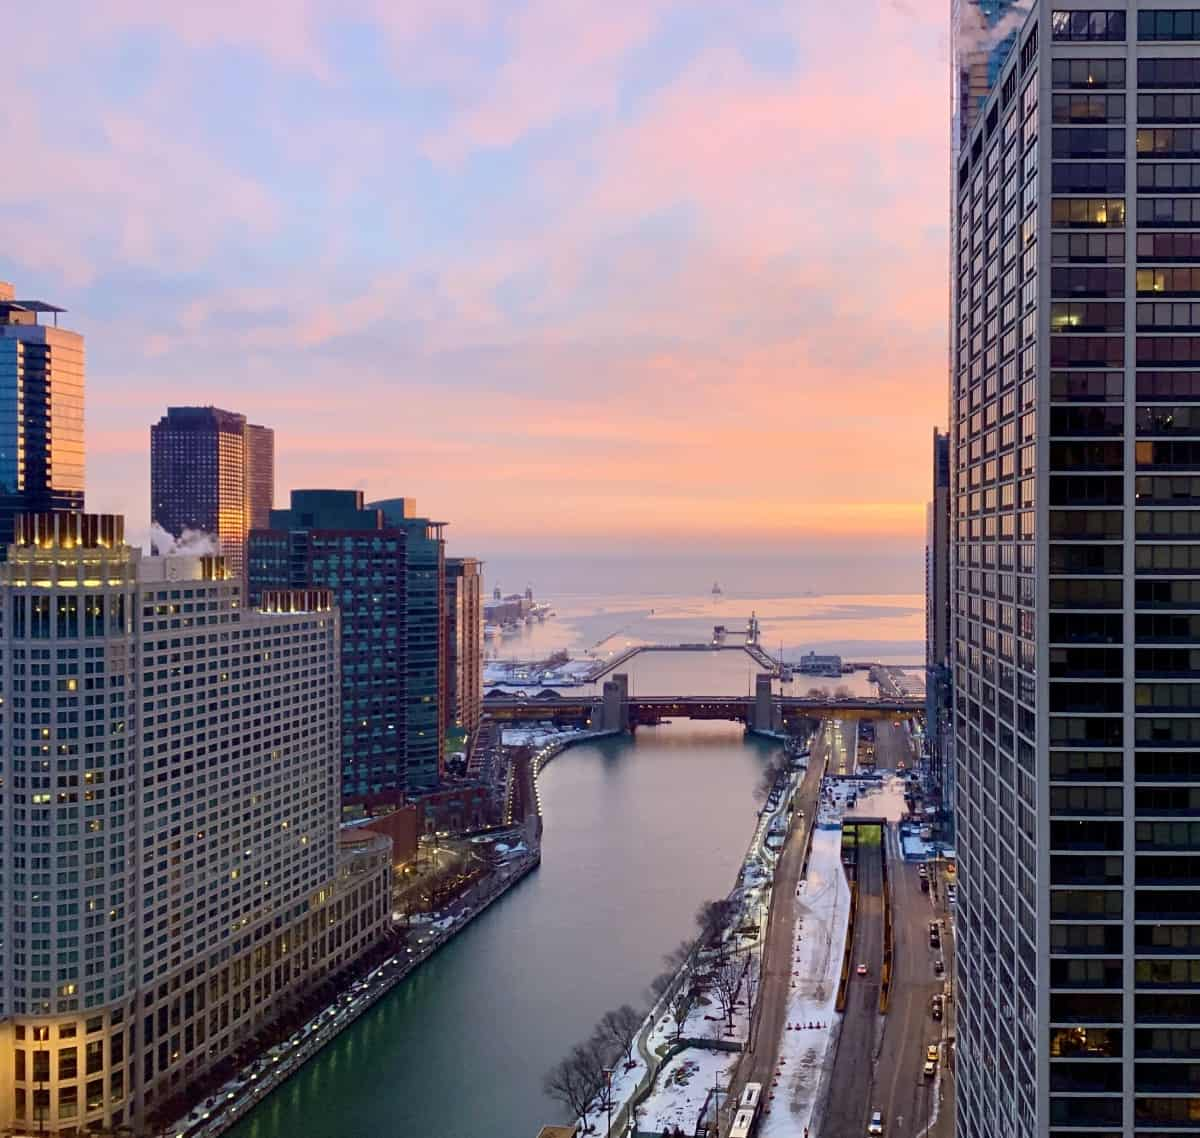 Things to do in Chicago for first-timers - sunrise on the lakefront is amazing